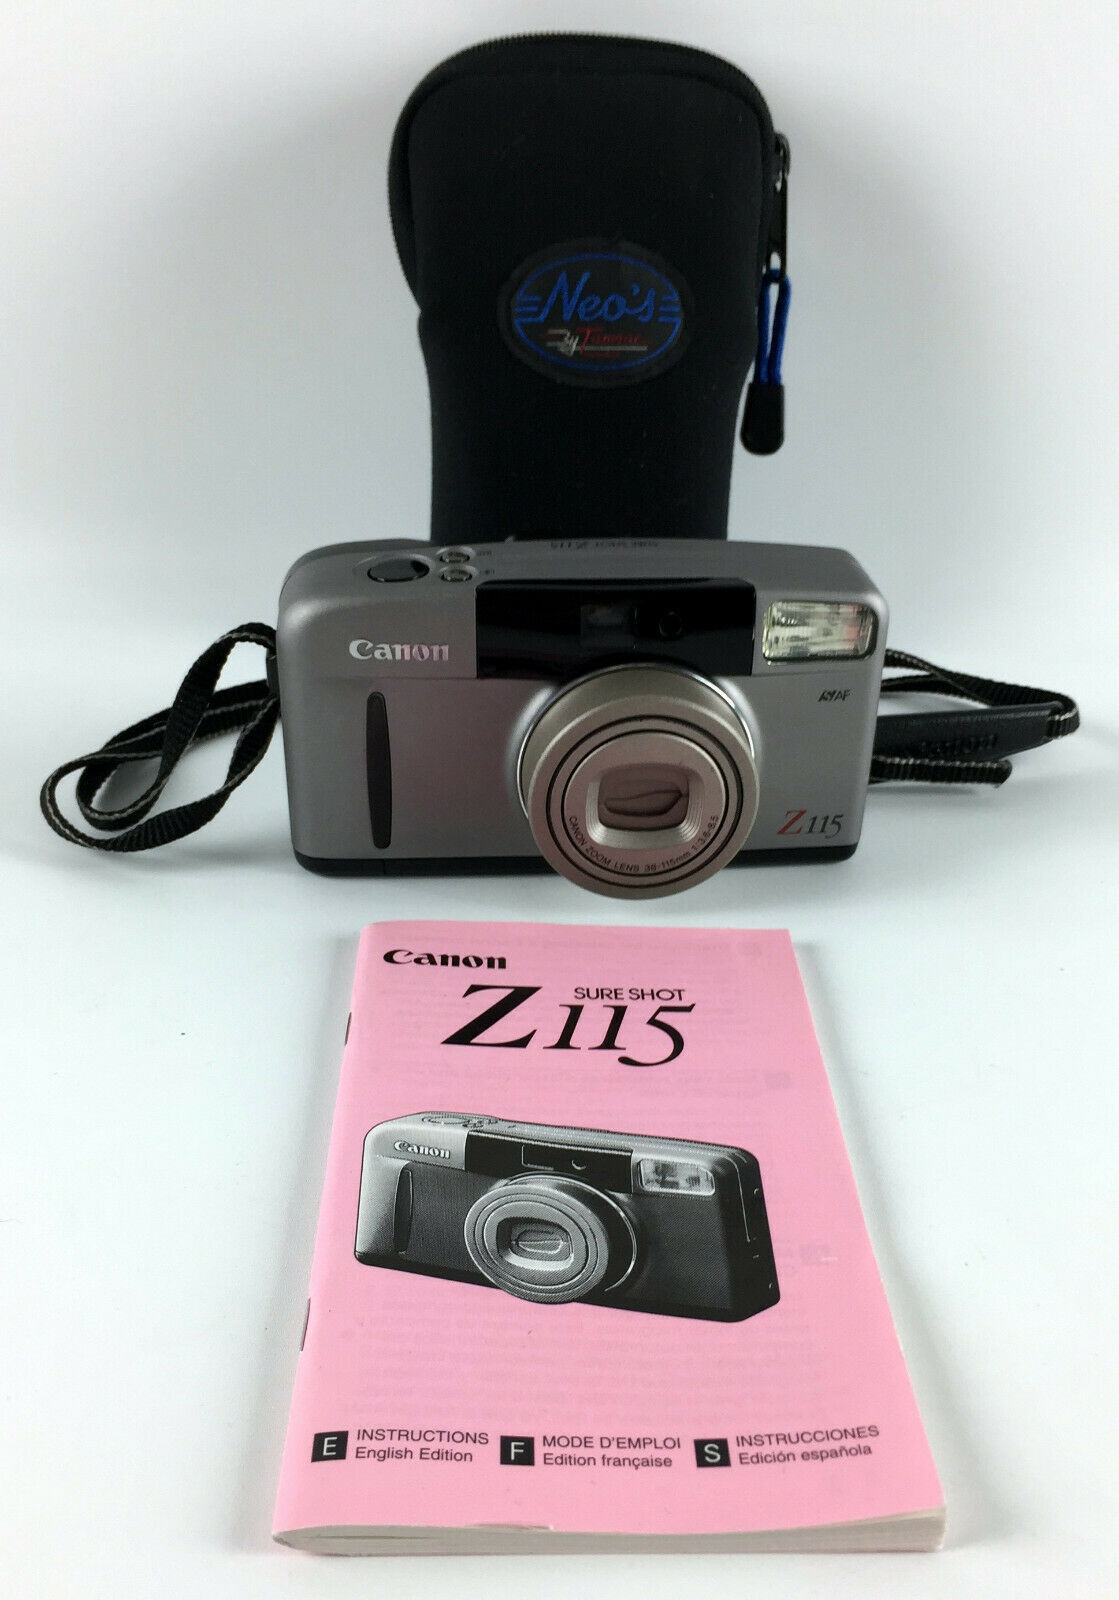 Canon Sure Shot Z115 35mm Point & Shoot Film Camera w/Instructionb Book